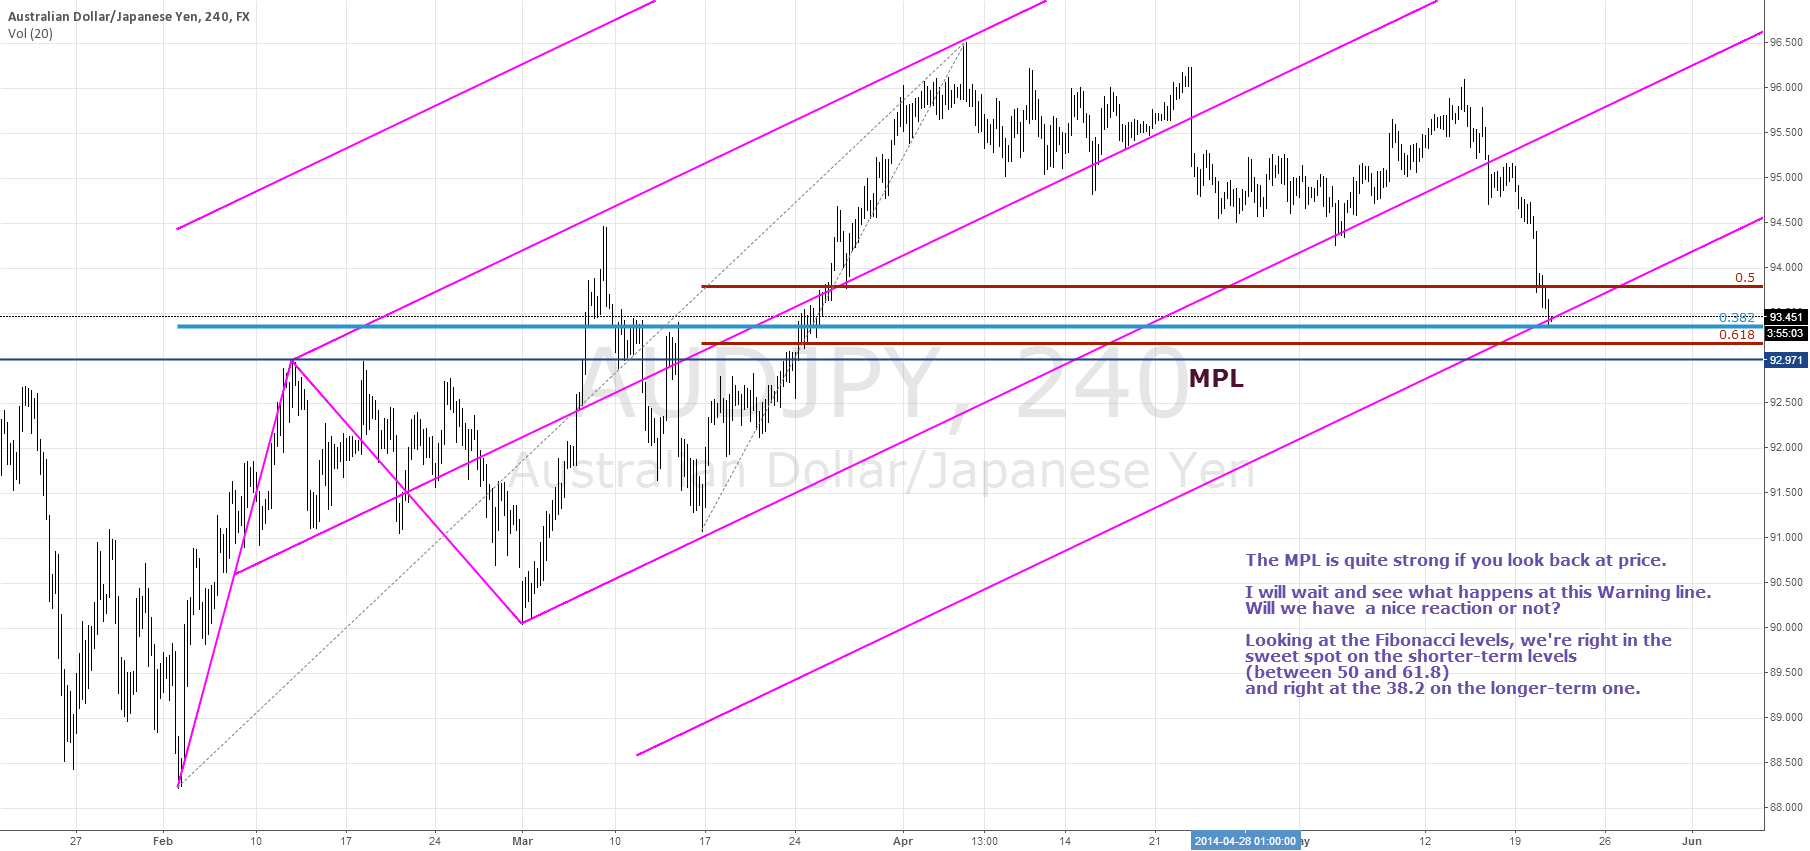 Watching the AUDJPY